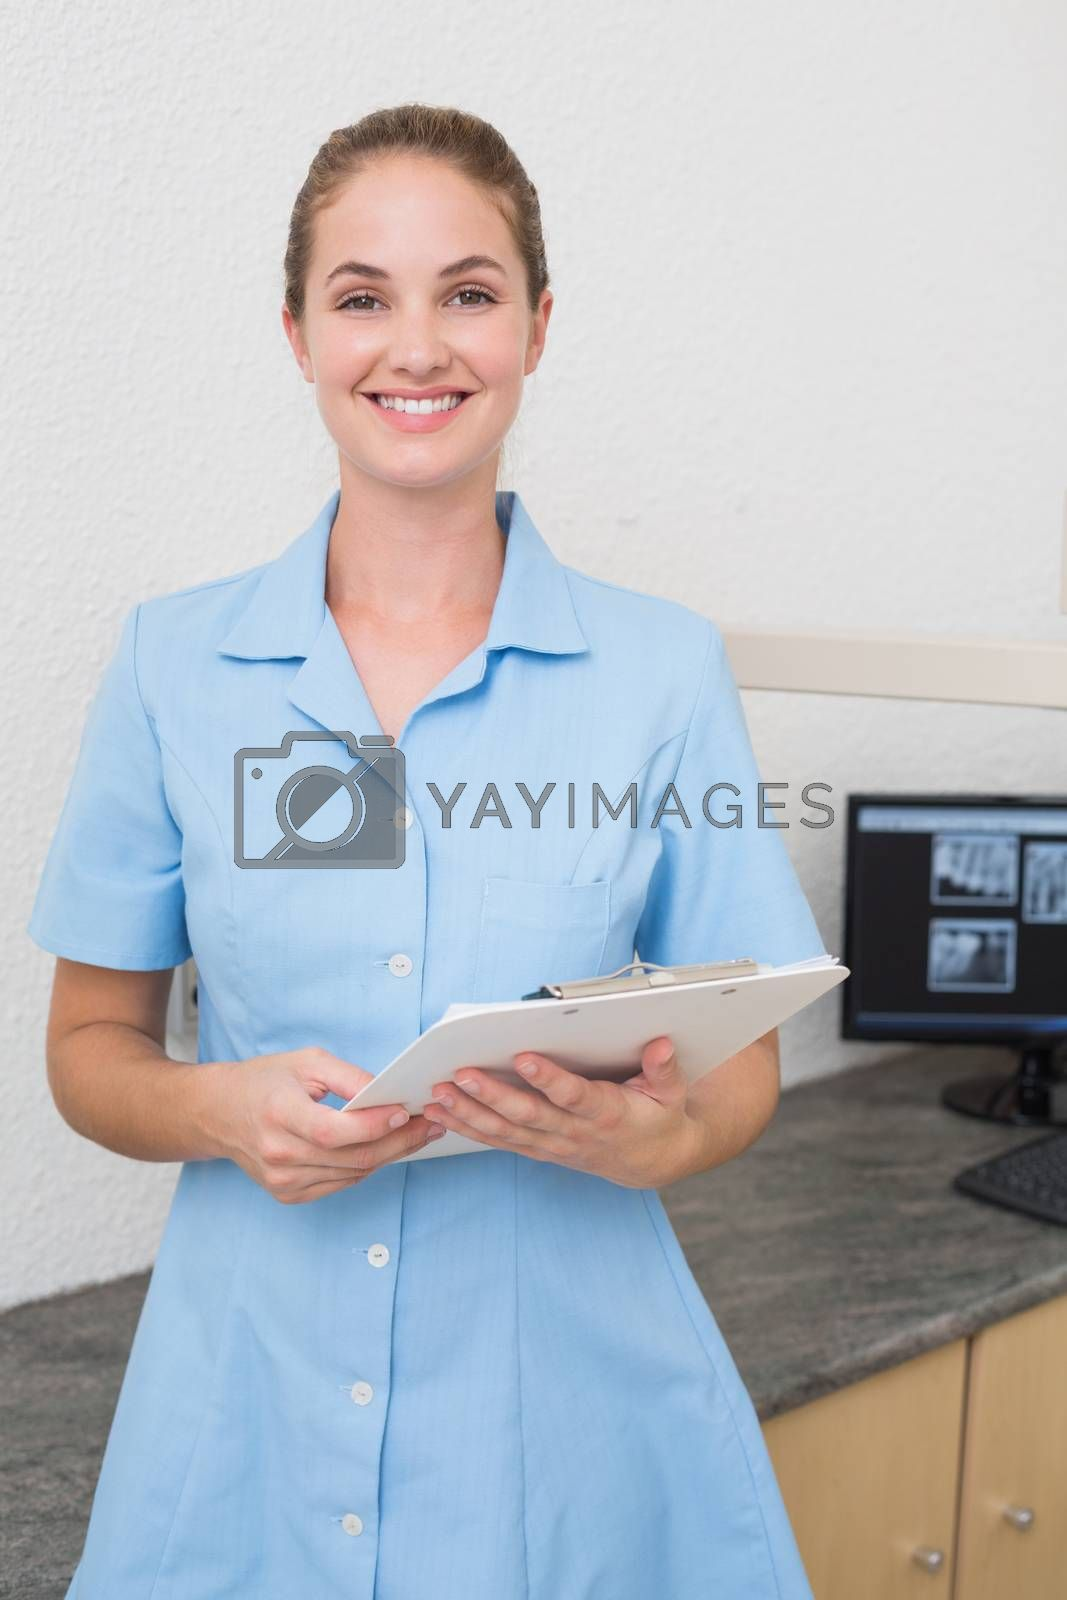 Smiling dental assistant looking at camera holding clipboard at the dental clinic